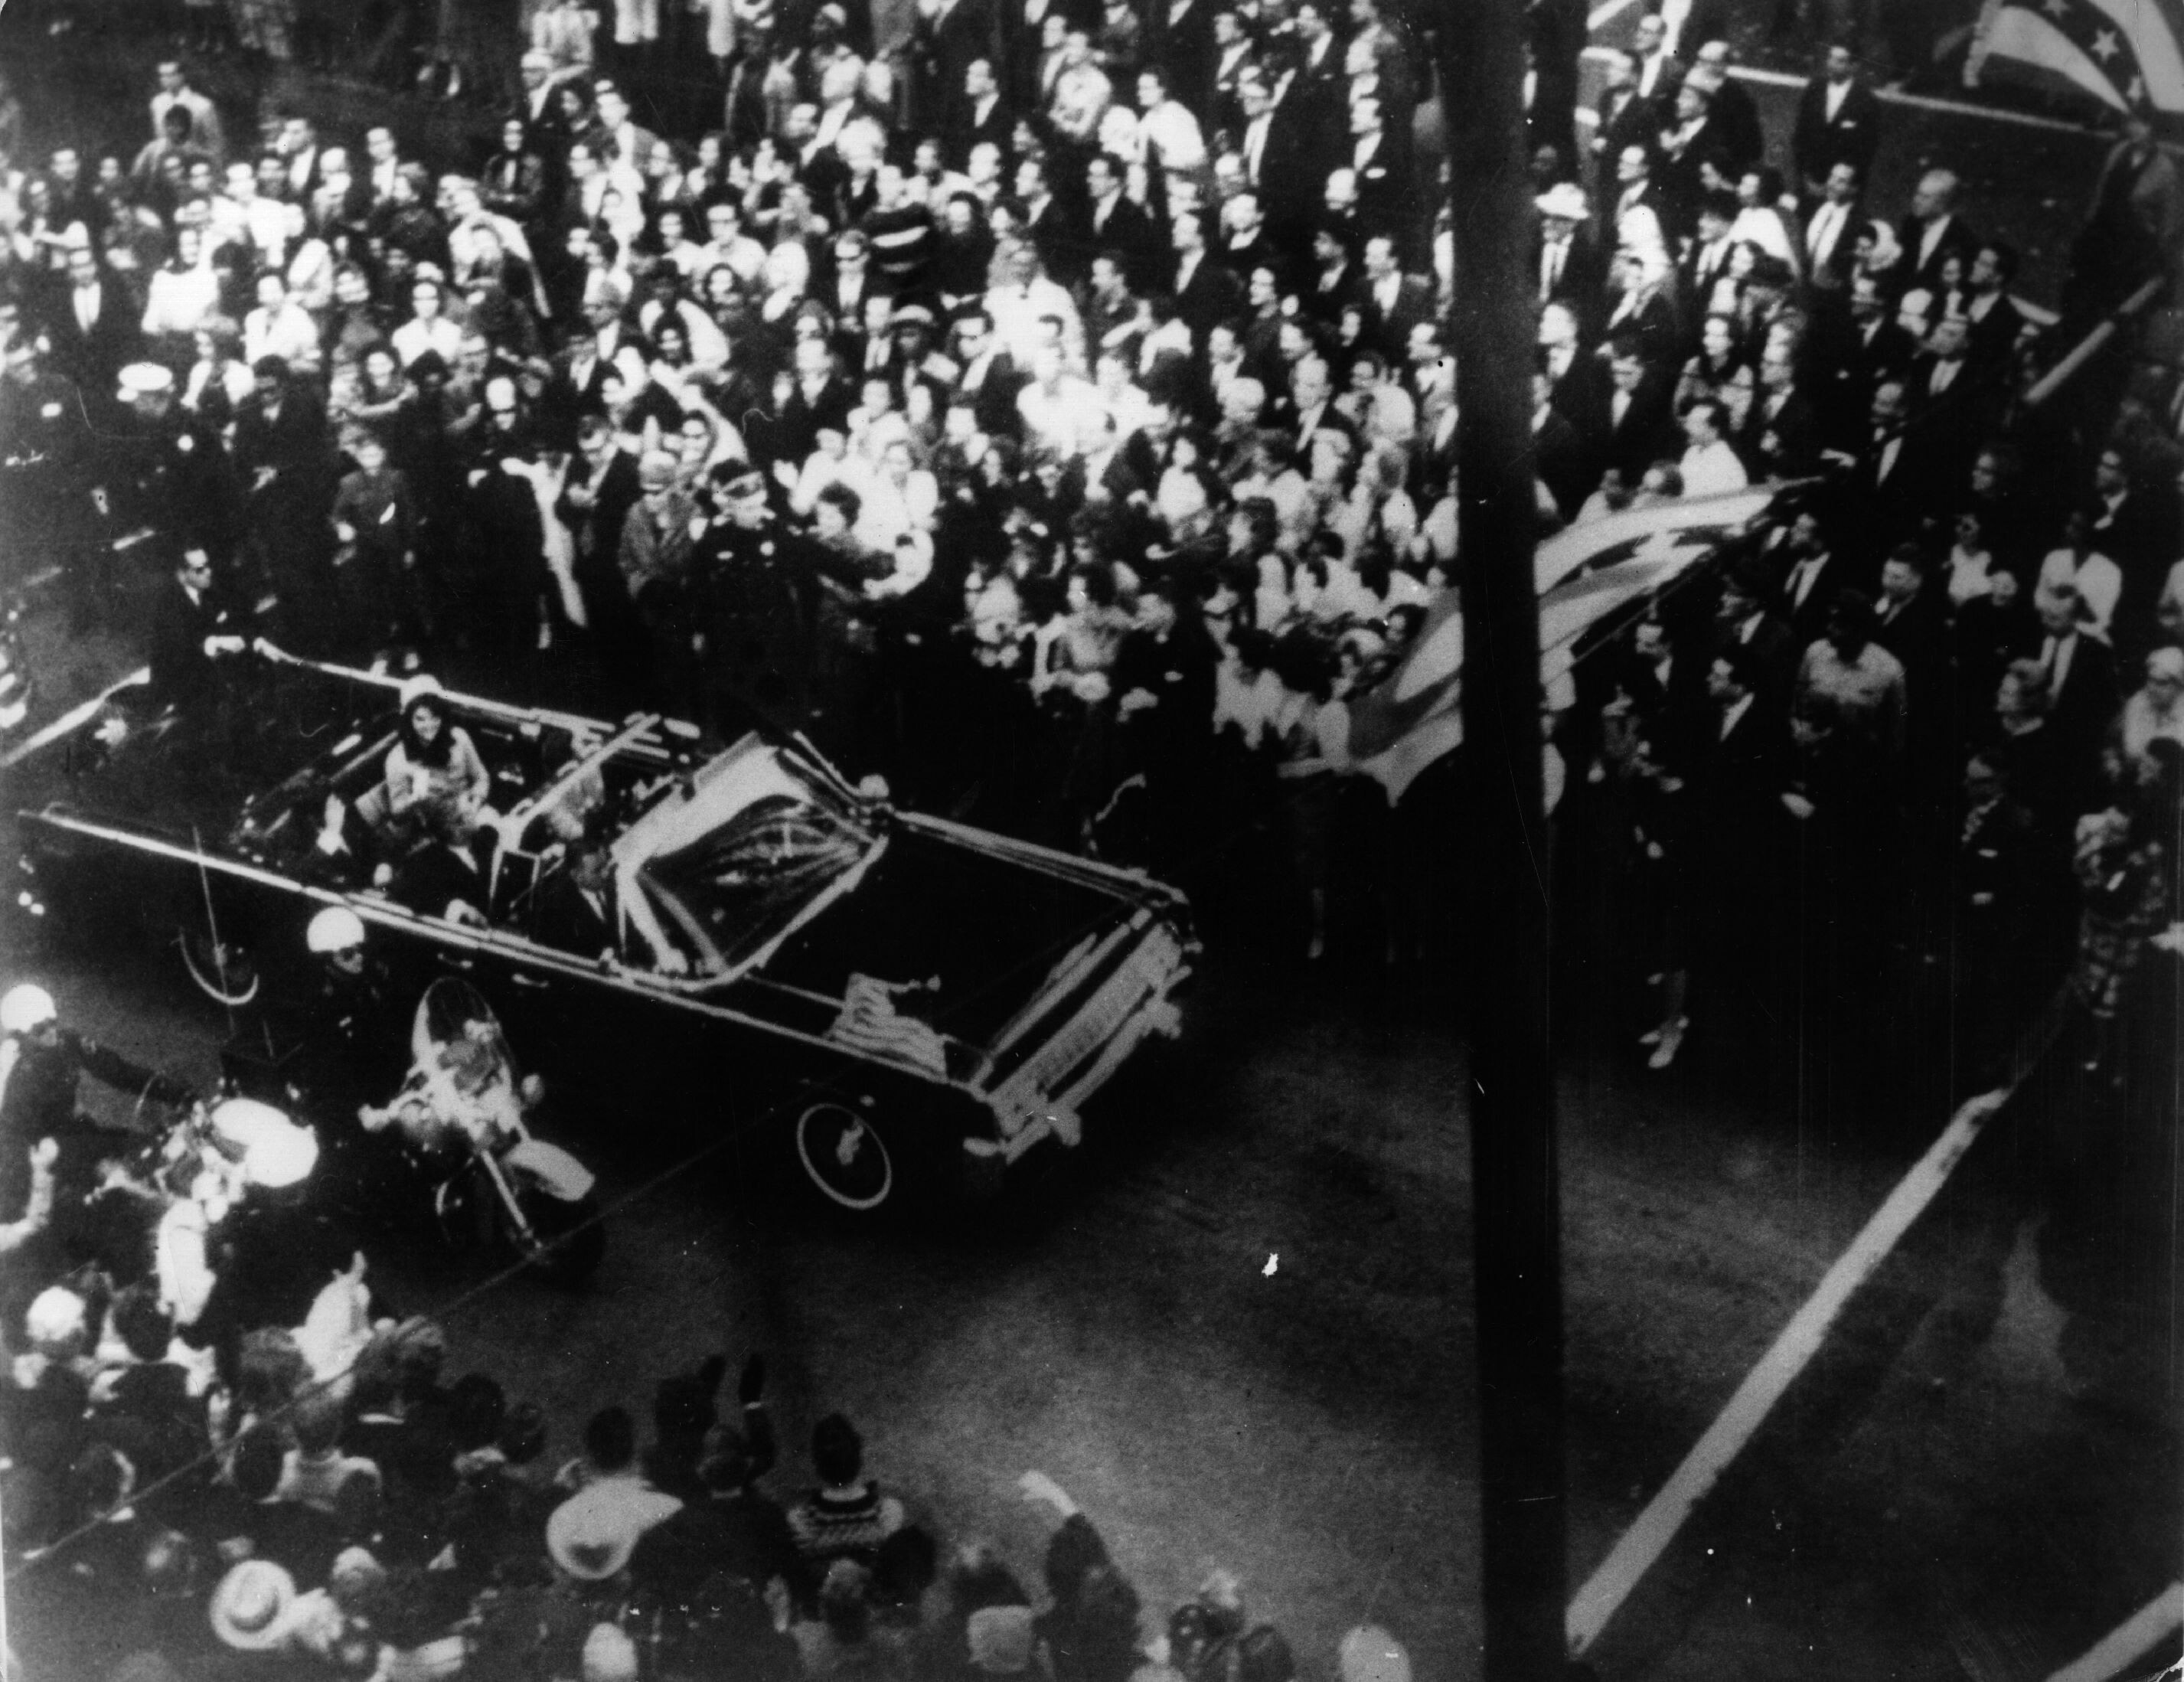 White House further postpones disclosure of JFK assassination documents, citing Covid